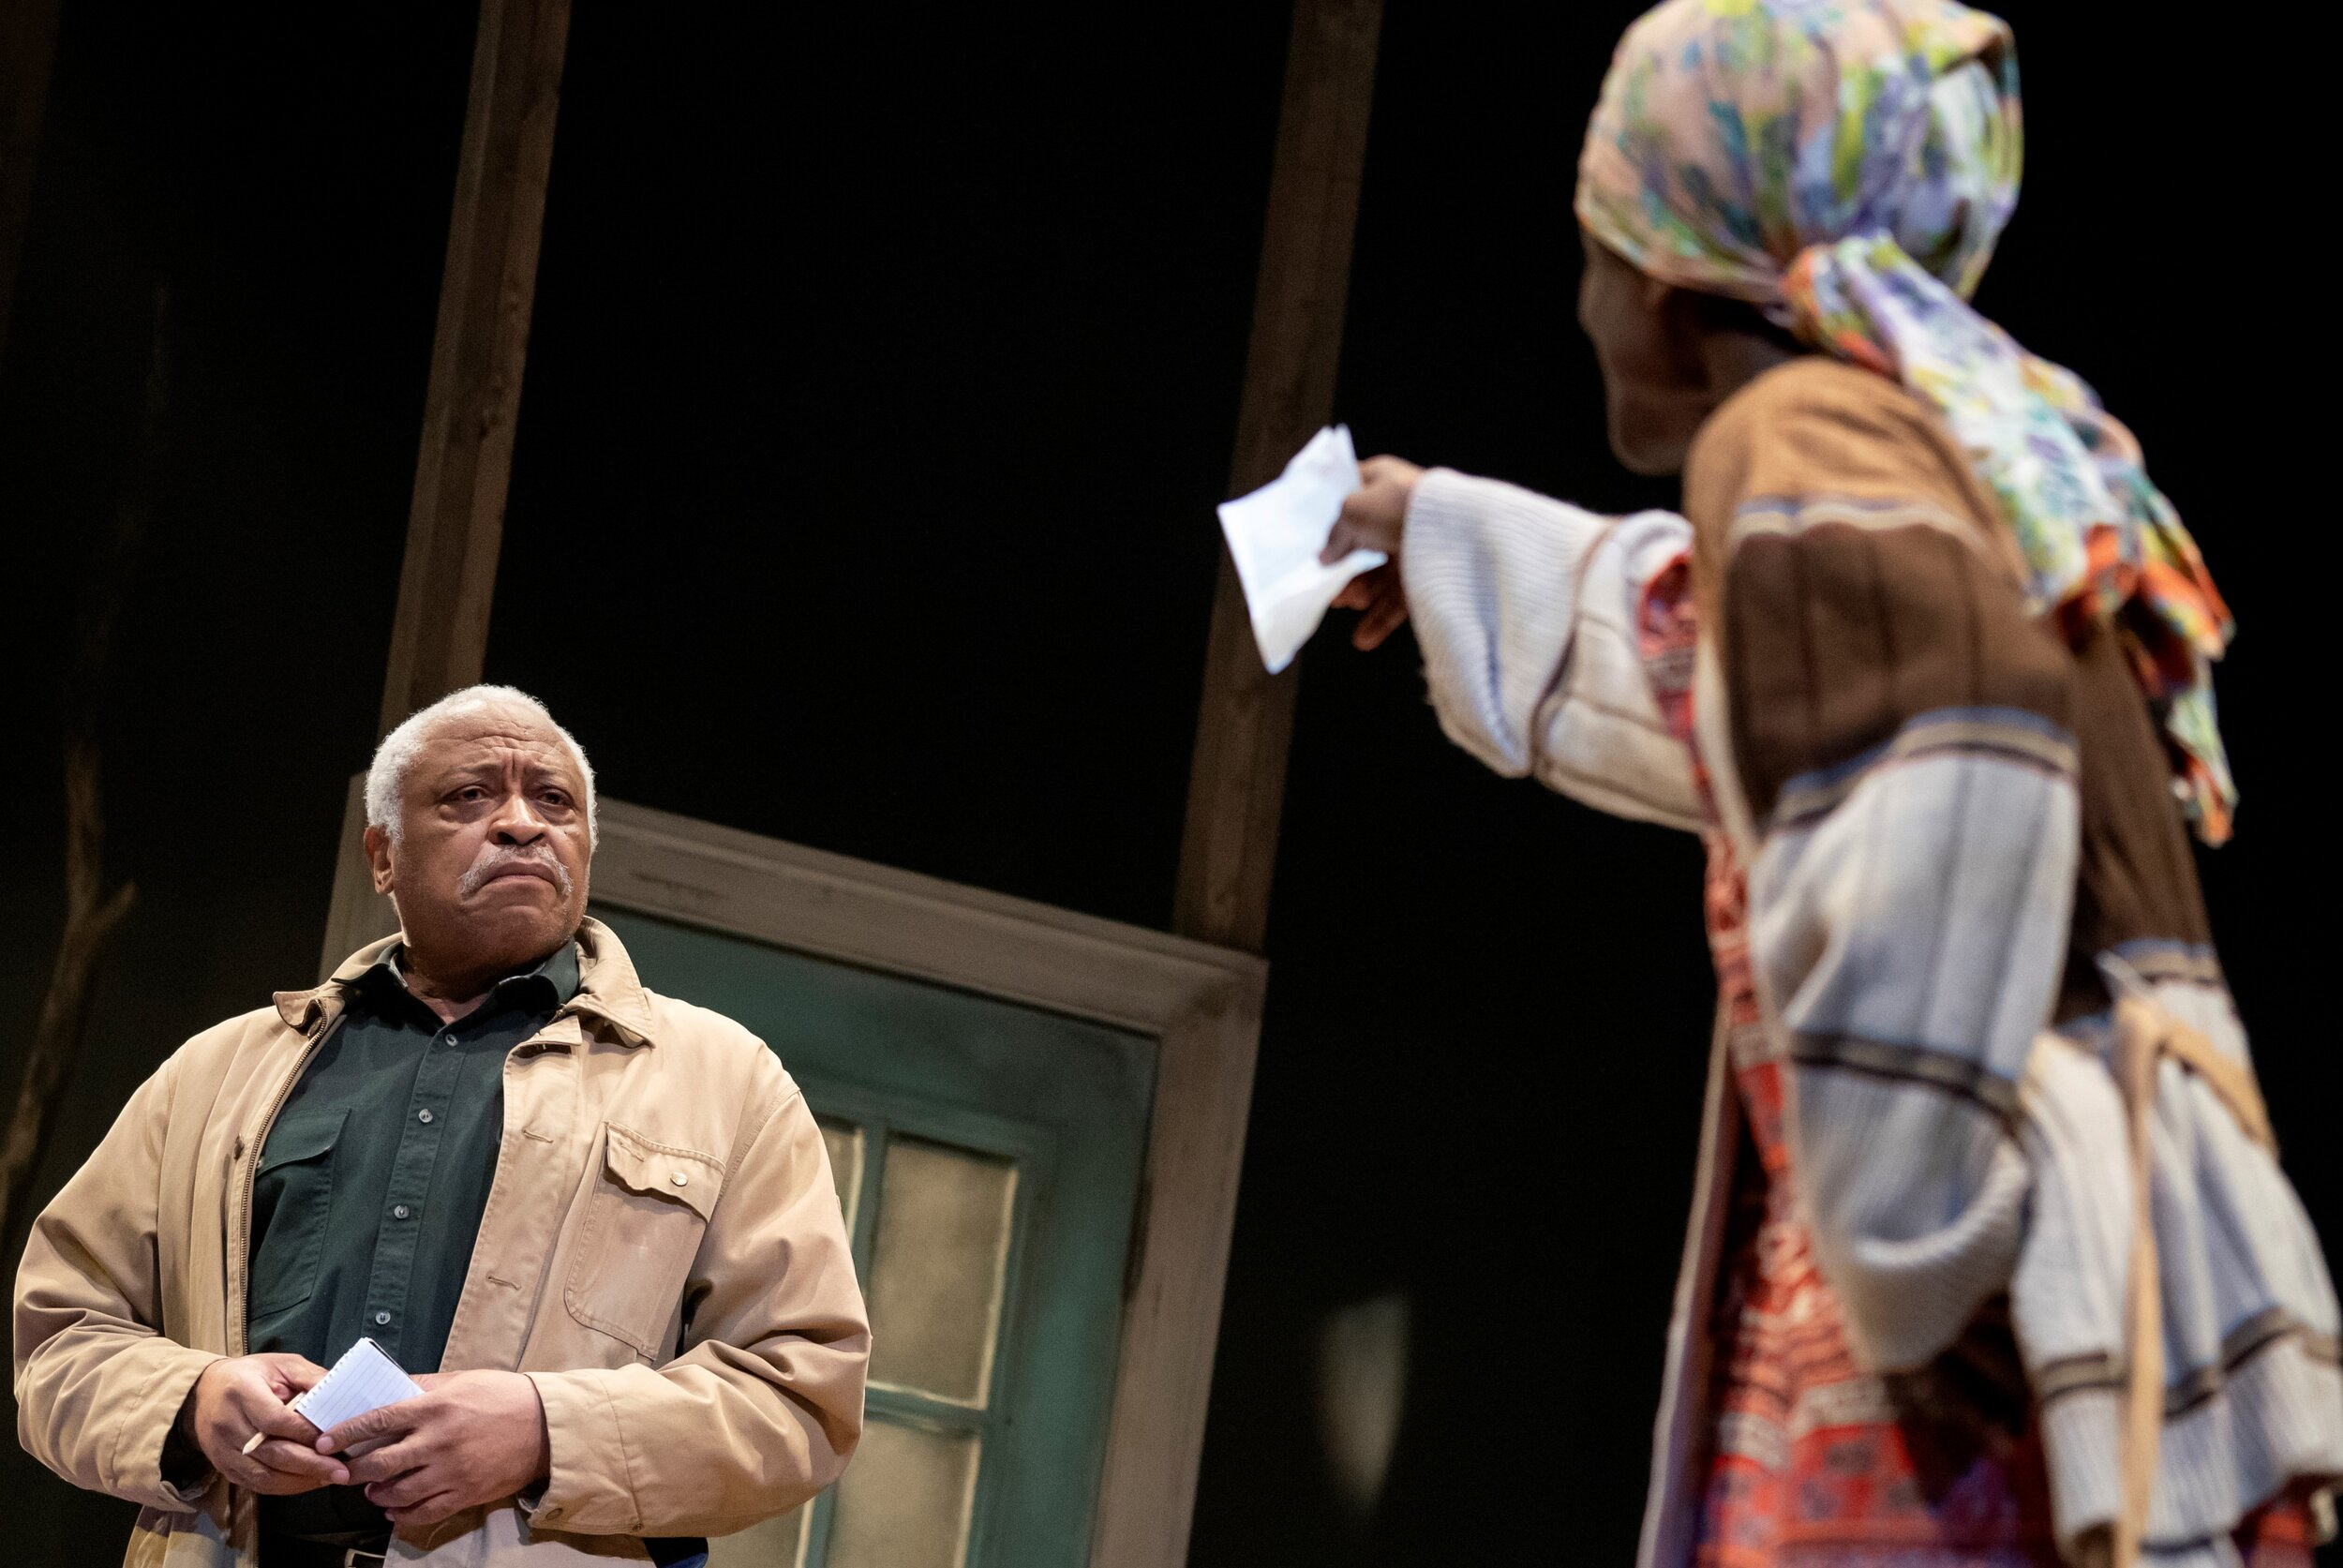 Azell Abernathy (Ron Canada) is a solid physical presence, but Abasiama Ufot (Patrice Johnson Chevannes) senses something off kilter in his soul. Photographs by Joan Marcus.